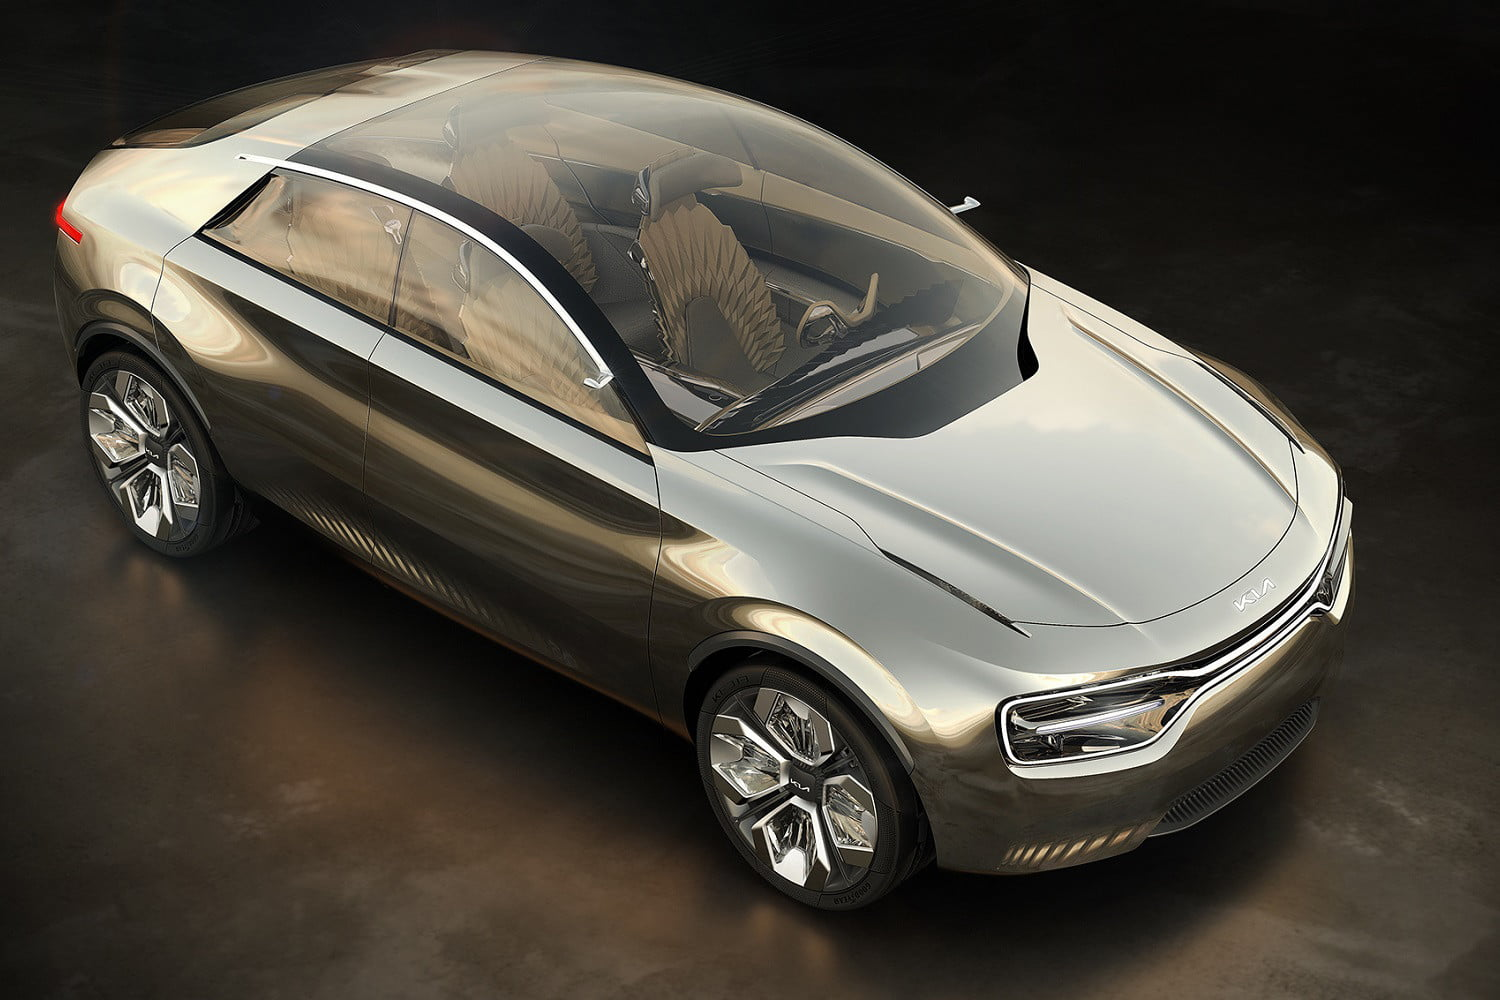 Kia's next electric car, due in 2021, will be a stunner